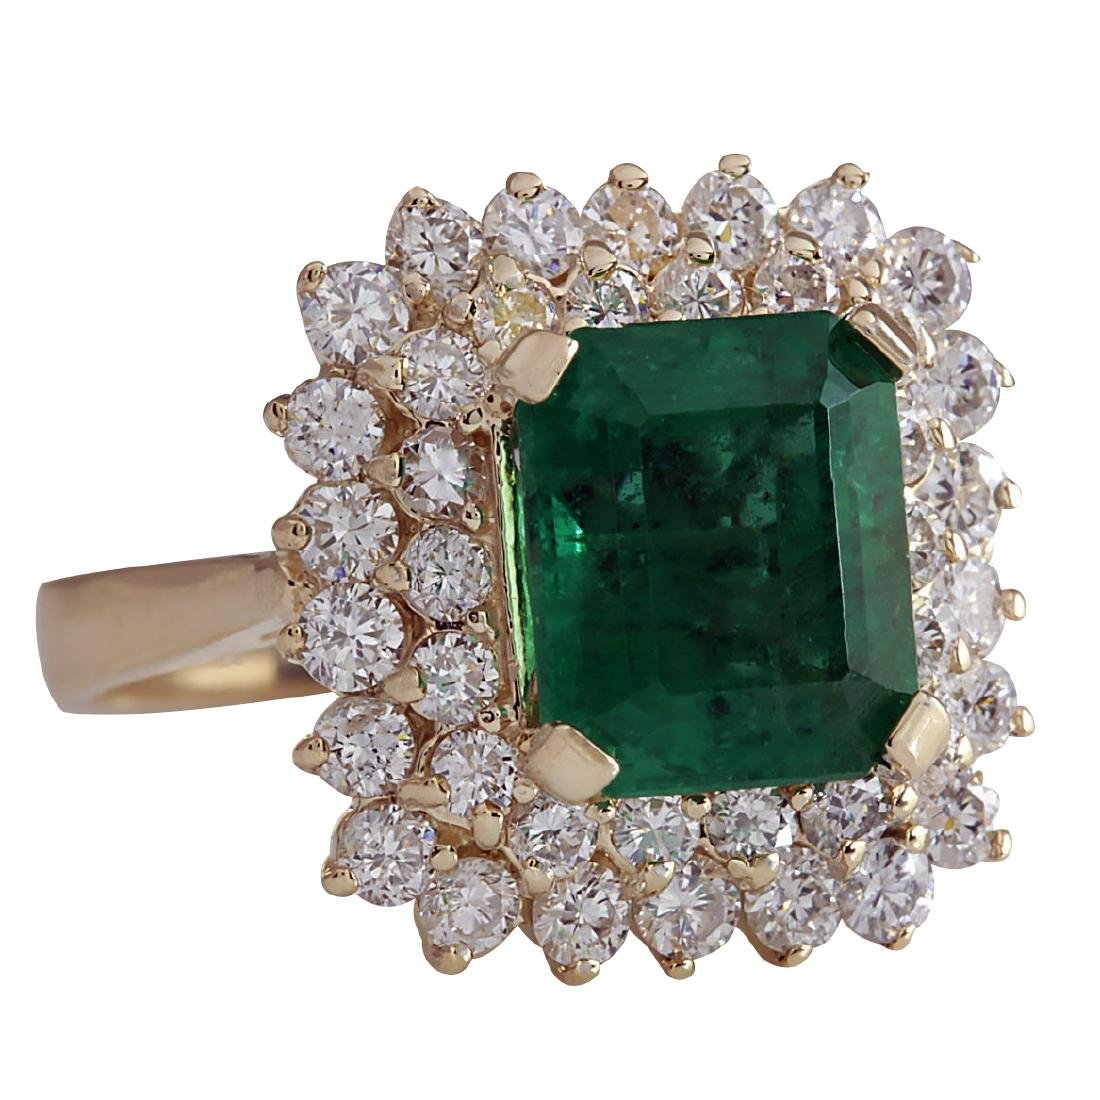 5.51CTW Natural Emerald And Diamond Ring 18K Solid - 2